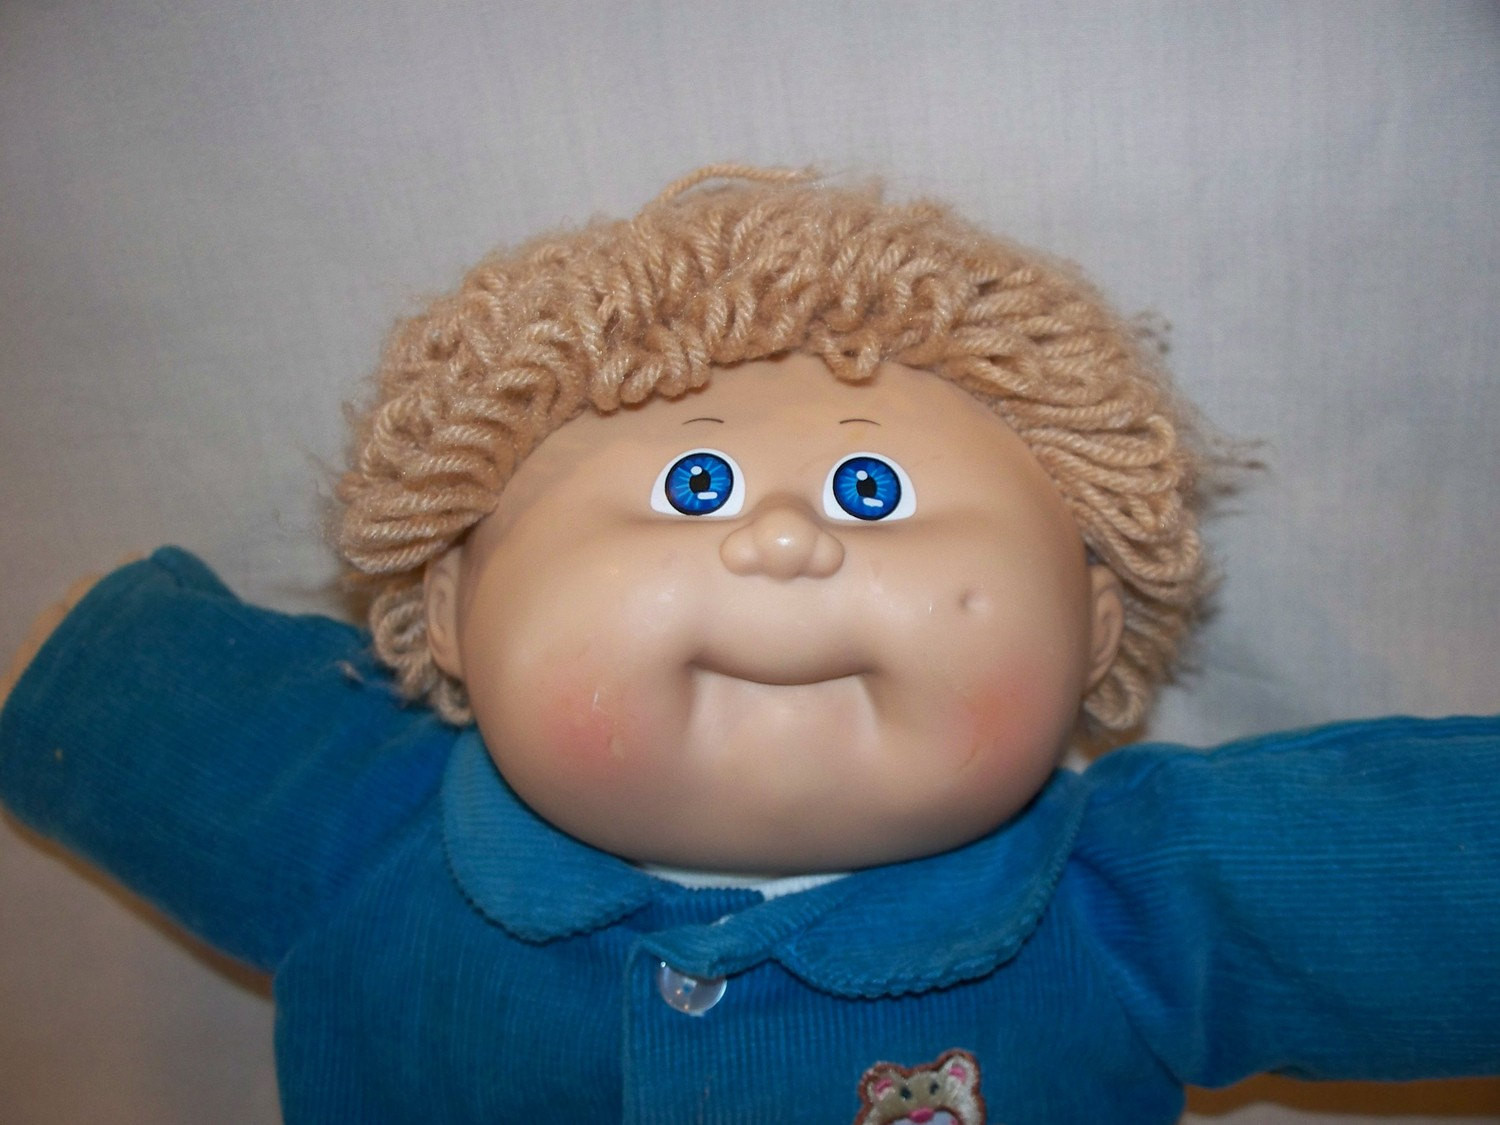 Boy Cabbage Patch Dolls New Cabbage Patch Doll Vintage Dolls Boy 1986 Of Attractive 41 Ideas Boy Cabbage Patch Dolls